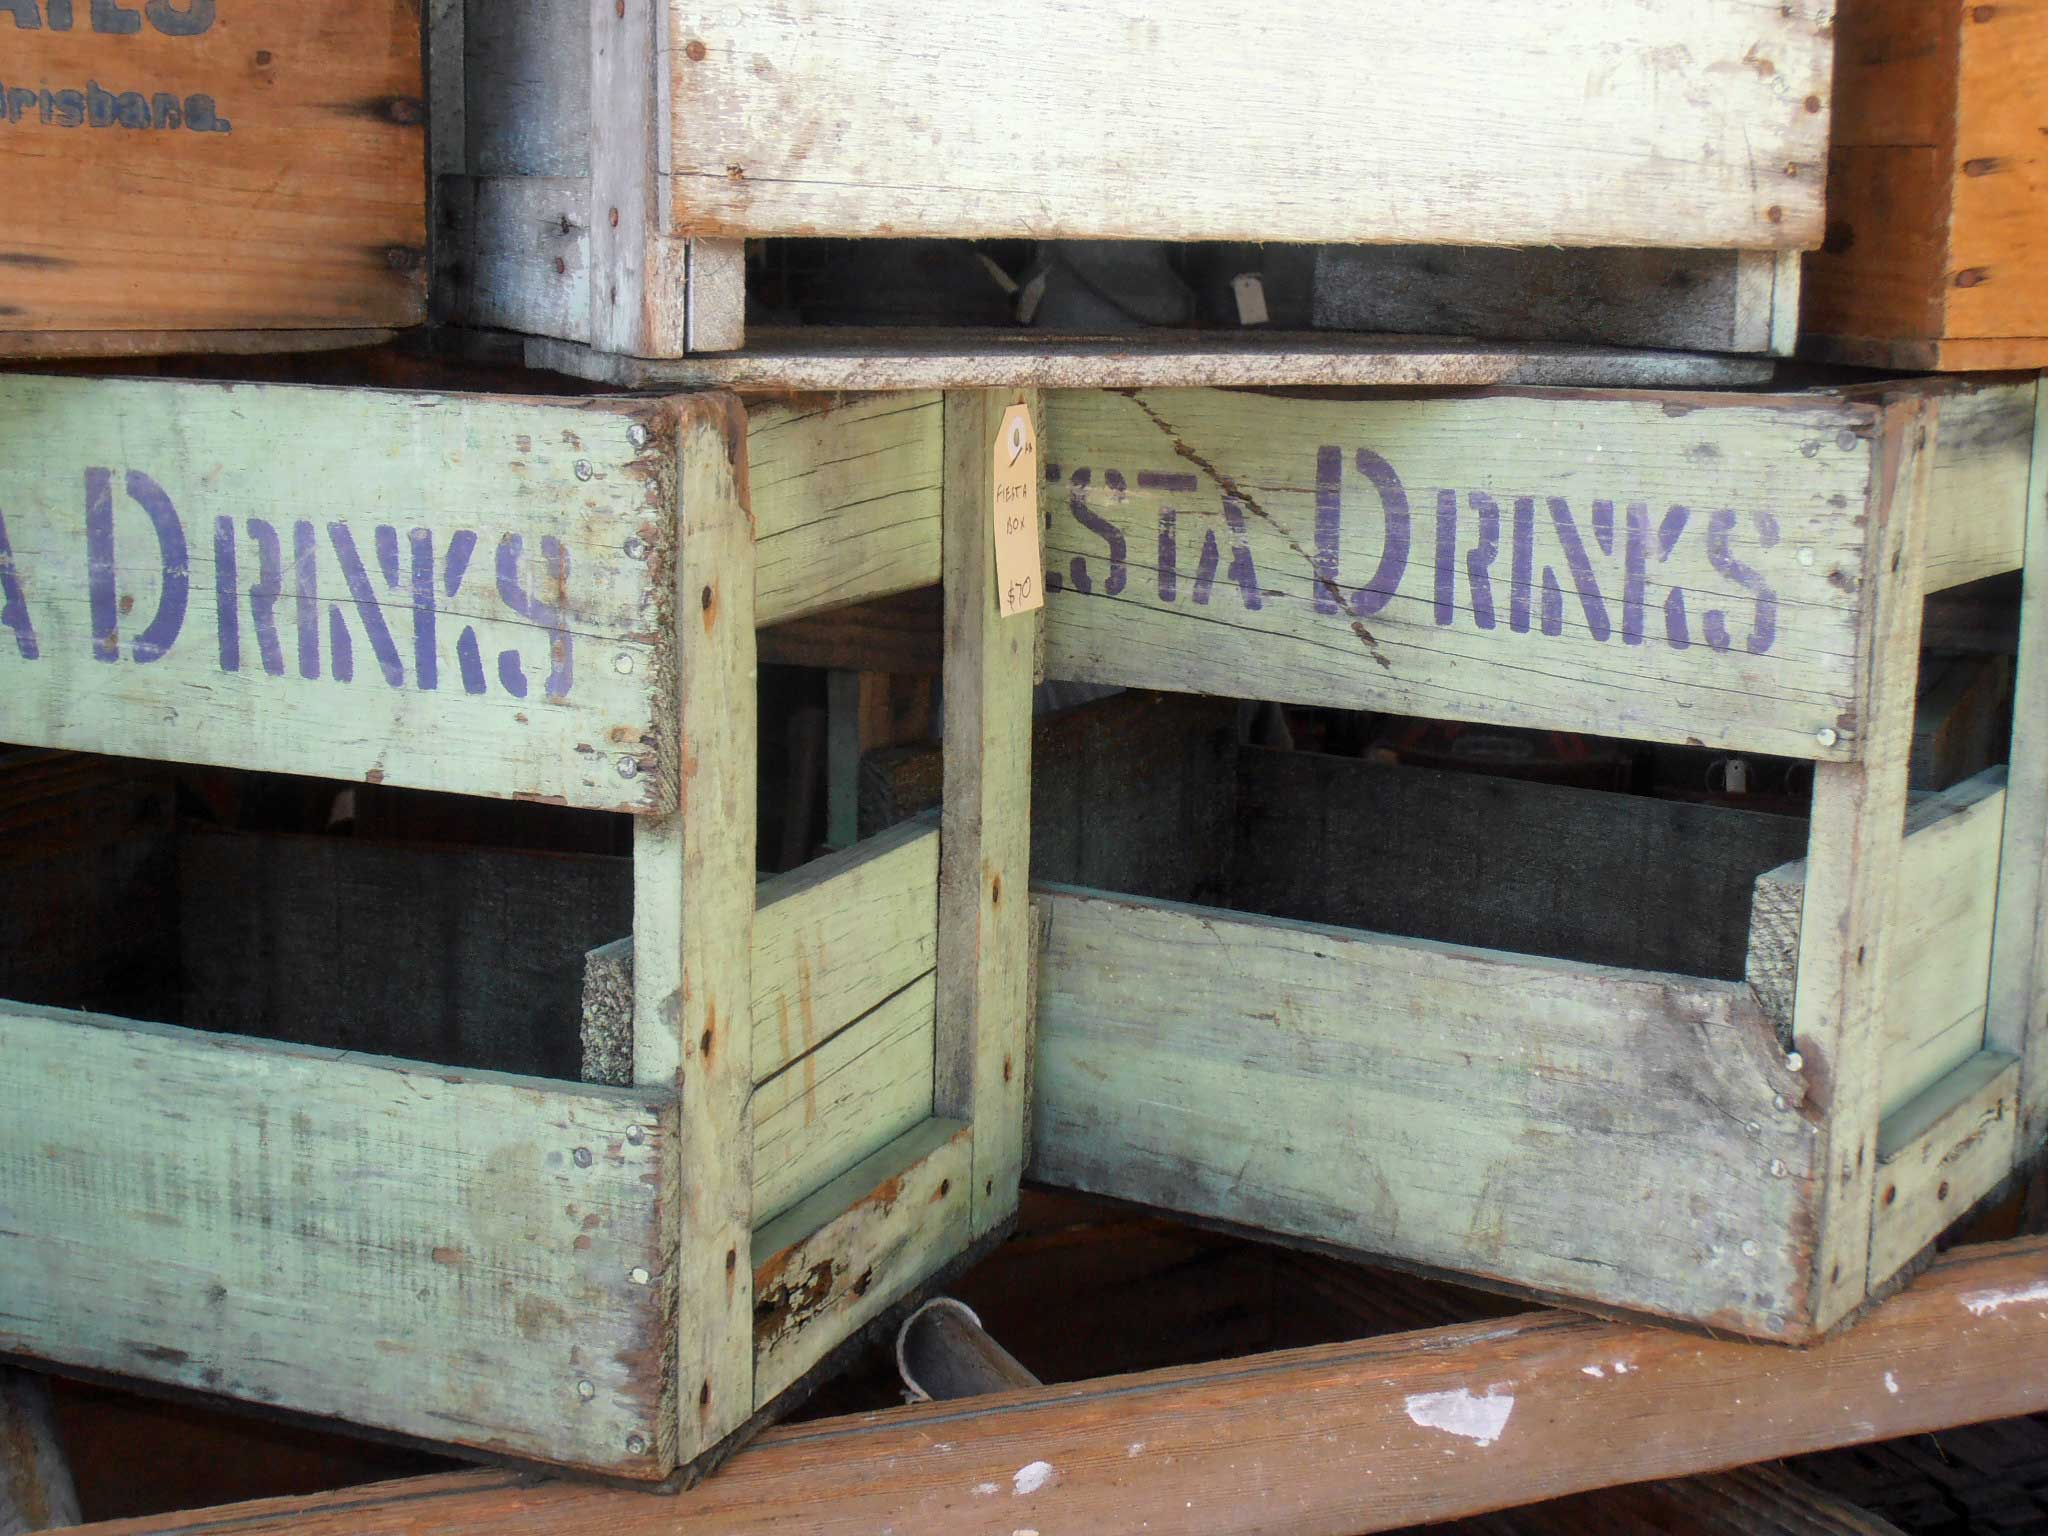 antique and vintage milk bottles and crates For sale at Heaths Old Wares, Antiques, Collectables and industrial antiques 12 station St bangalow NSW phone 0266872222 open 7 days